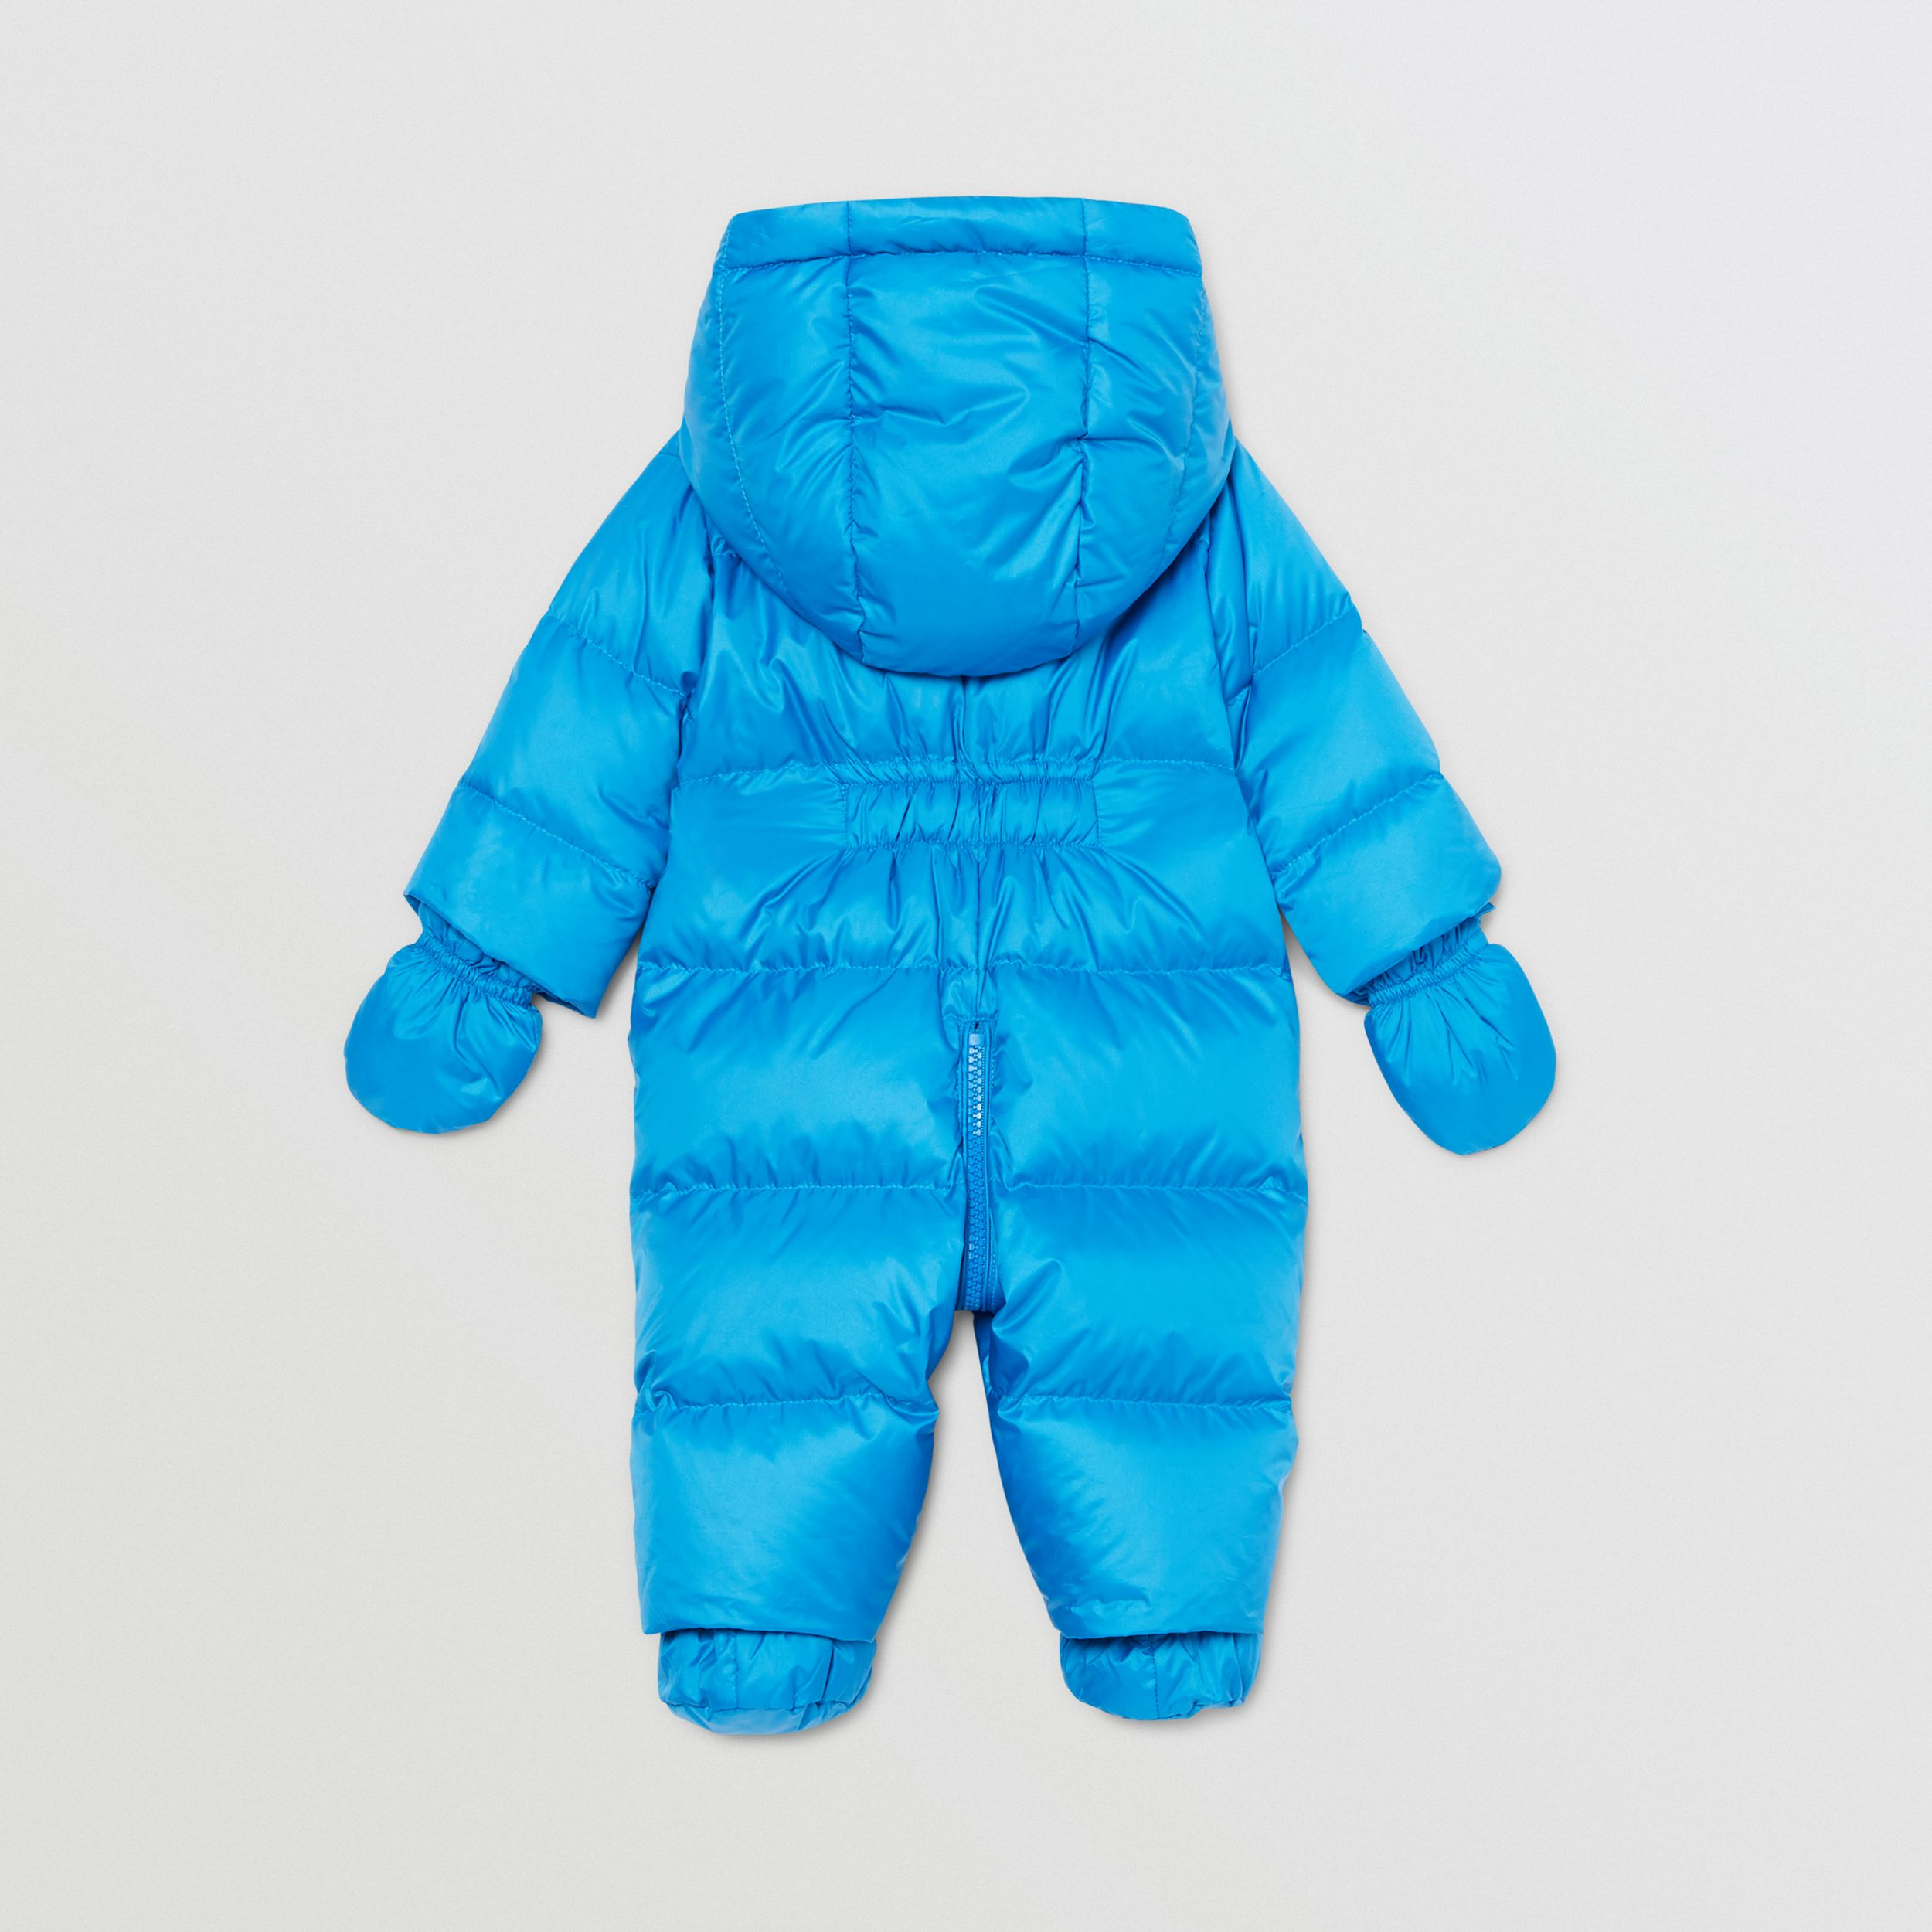 Logo Appliqué Puffer Suit in Cerulean Blue - Children | Burberry - 3